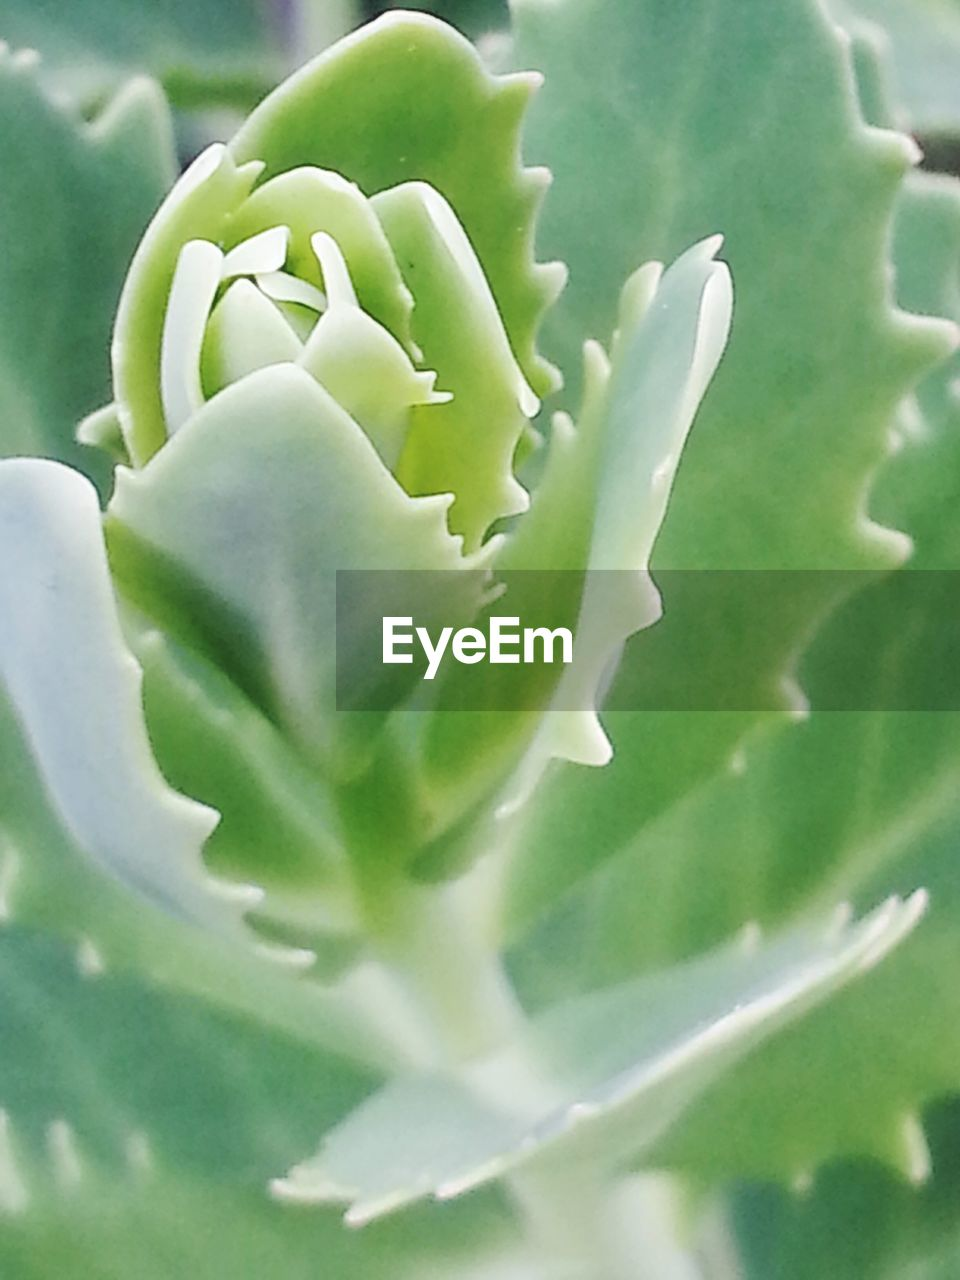 green color, growth, plant, nature, no people, cactus, close-up, day, beauty in nature, outdoors, freshness